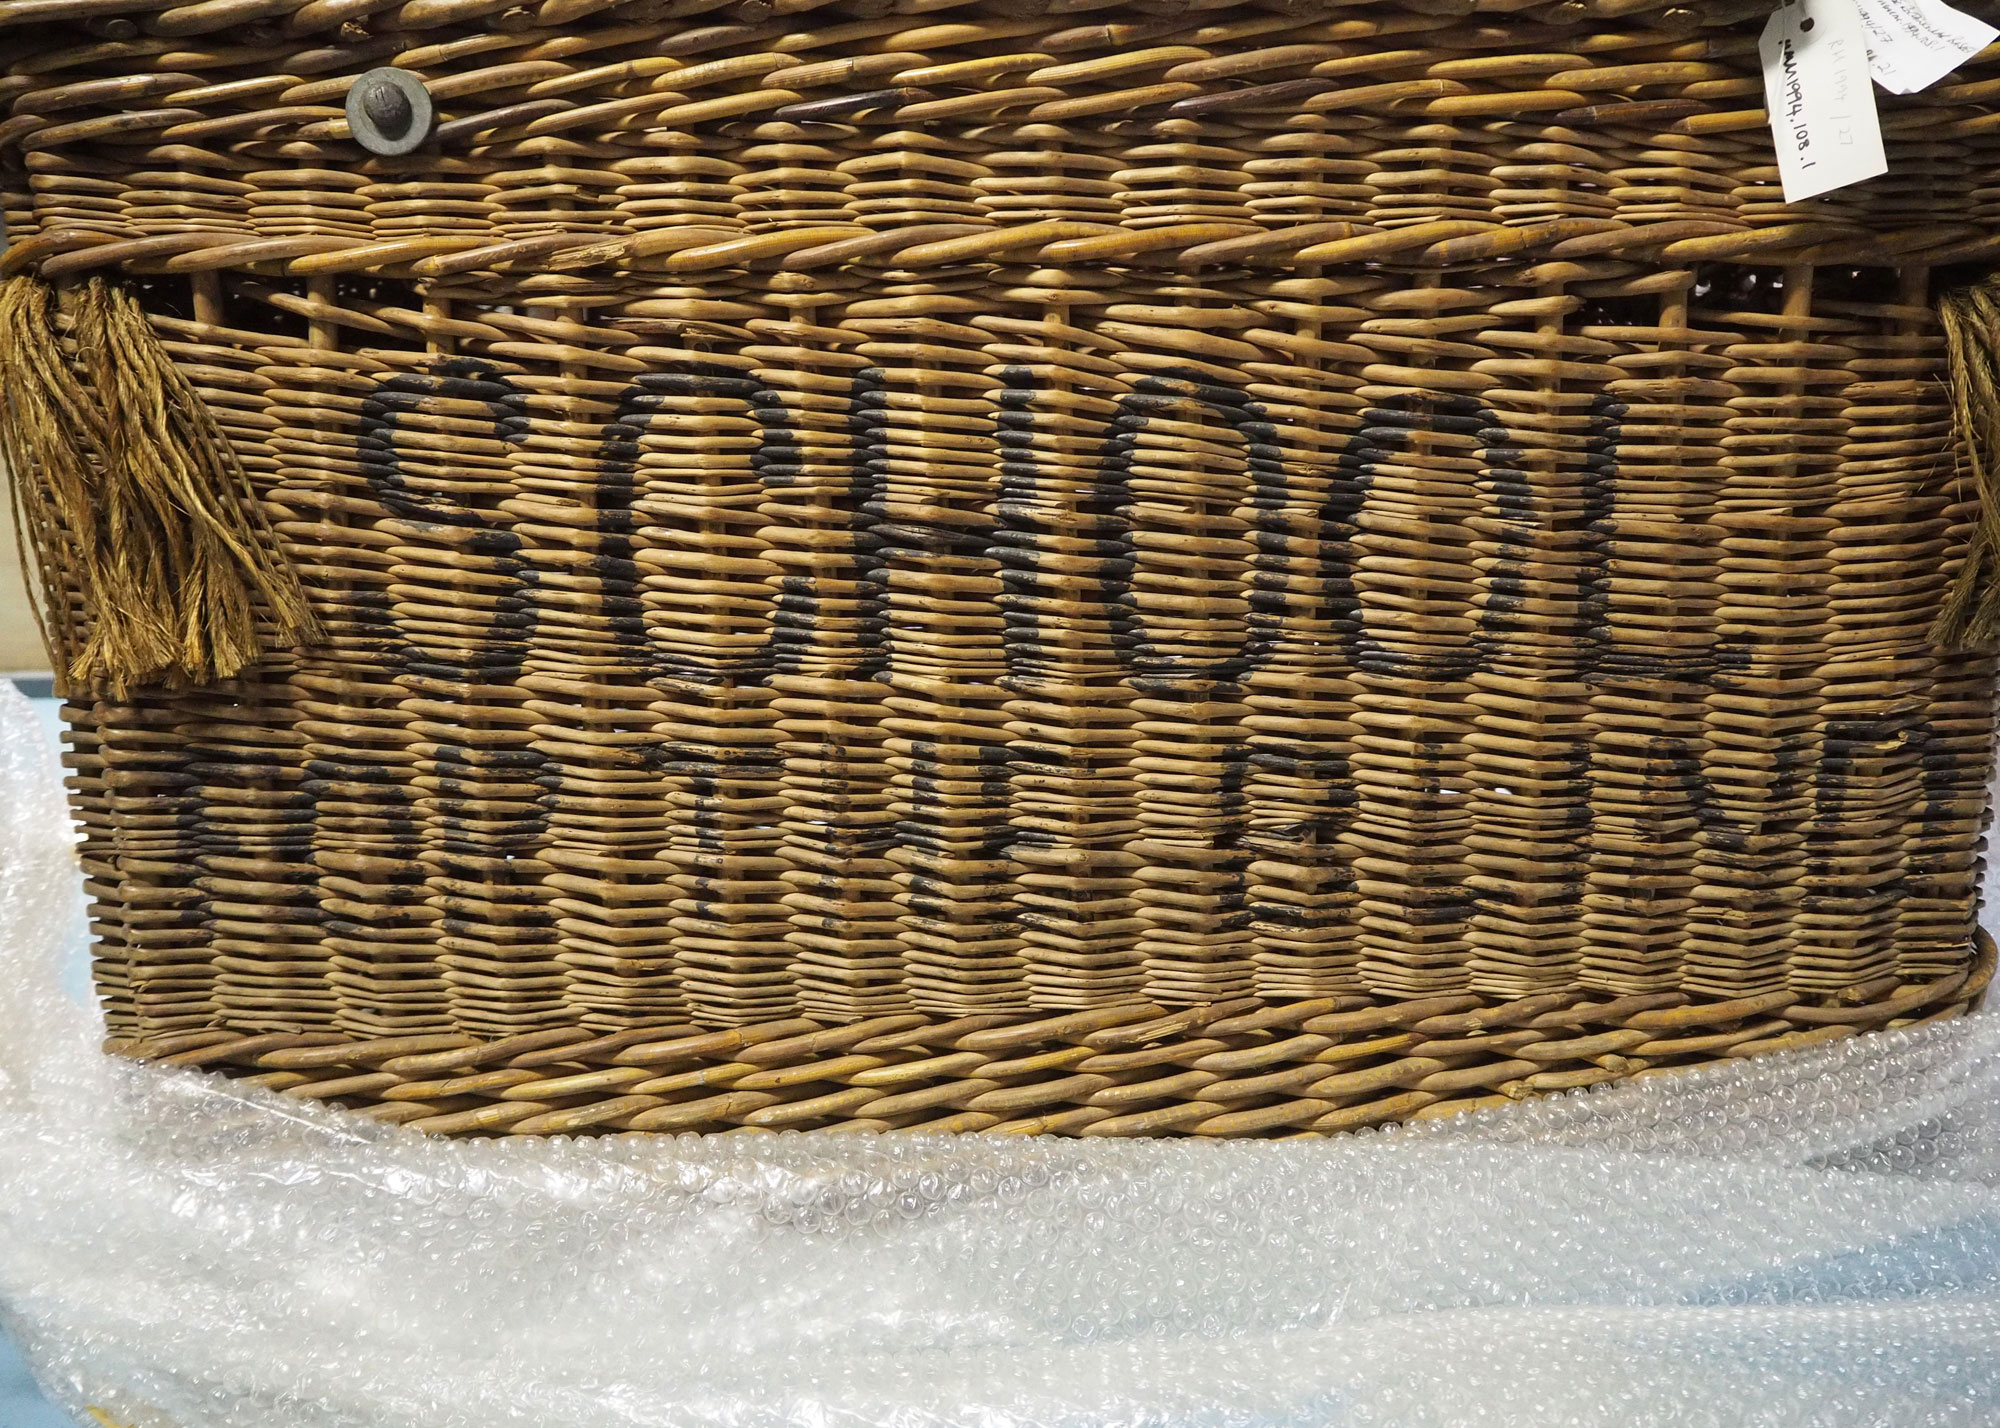 Large rectangular laundry basket with hinged lid and rope handles with 'School for the Blind' stencilled on the front. In the collection of the Museum of Liverpool MMM.1994.108.1, image taken by Anna Fairley Nielsson.